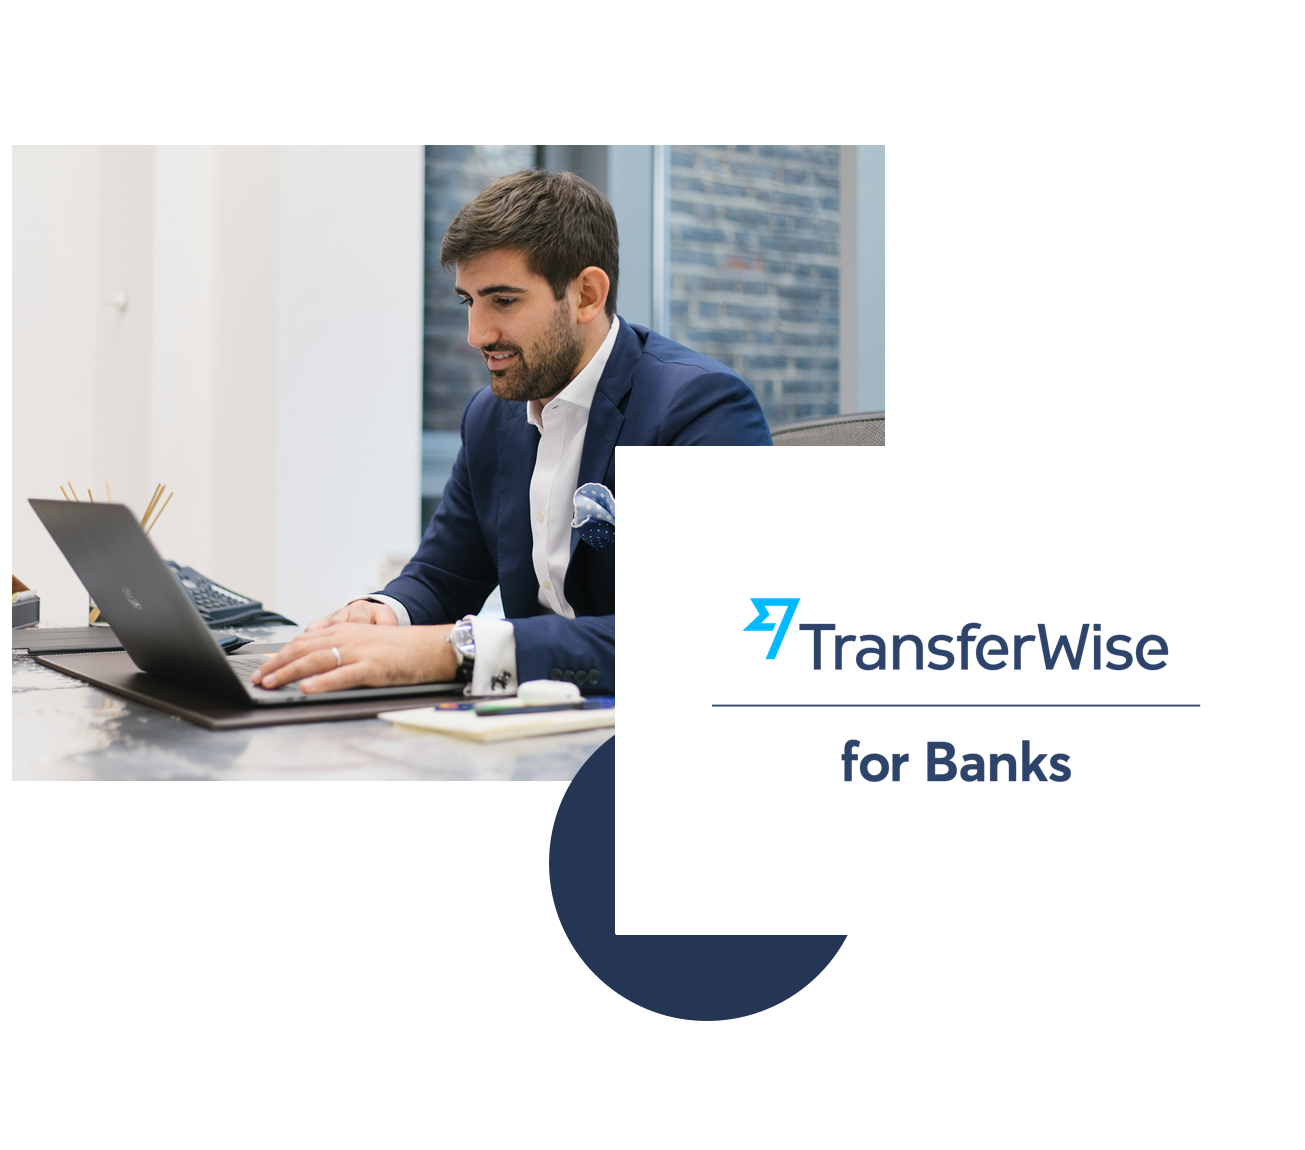 TransferWise for Banks.